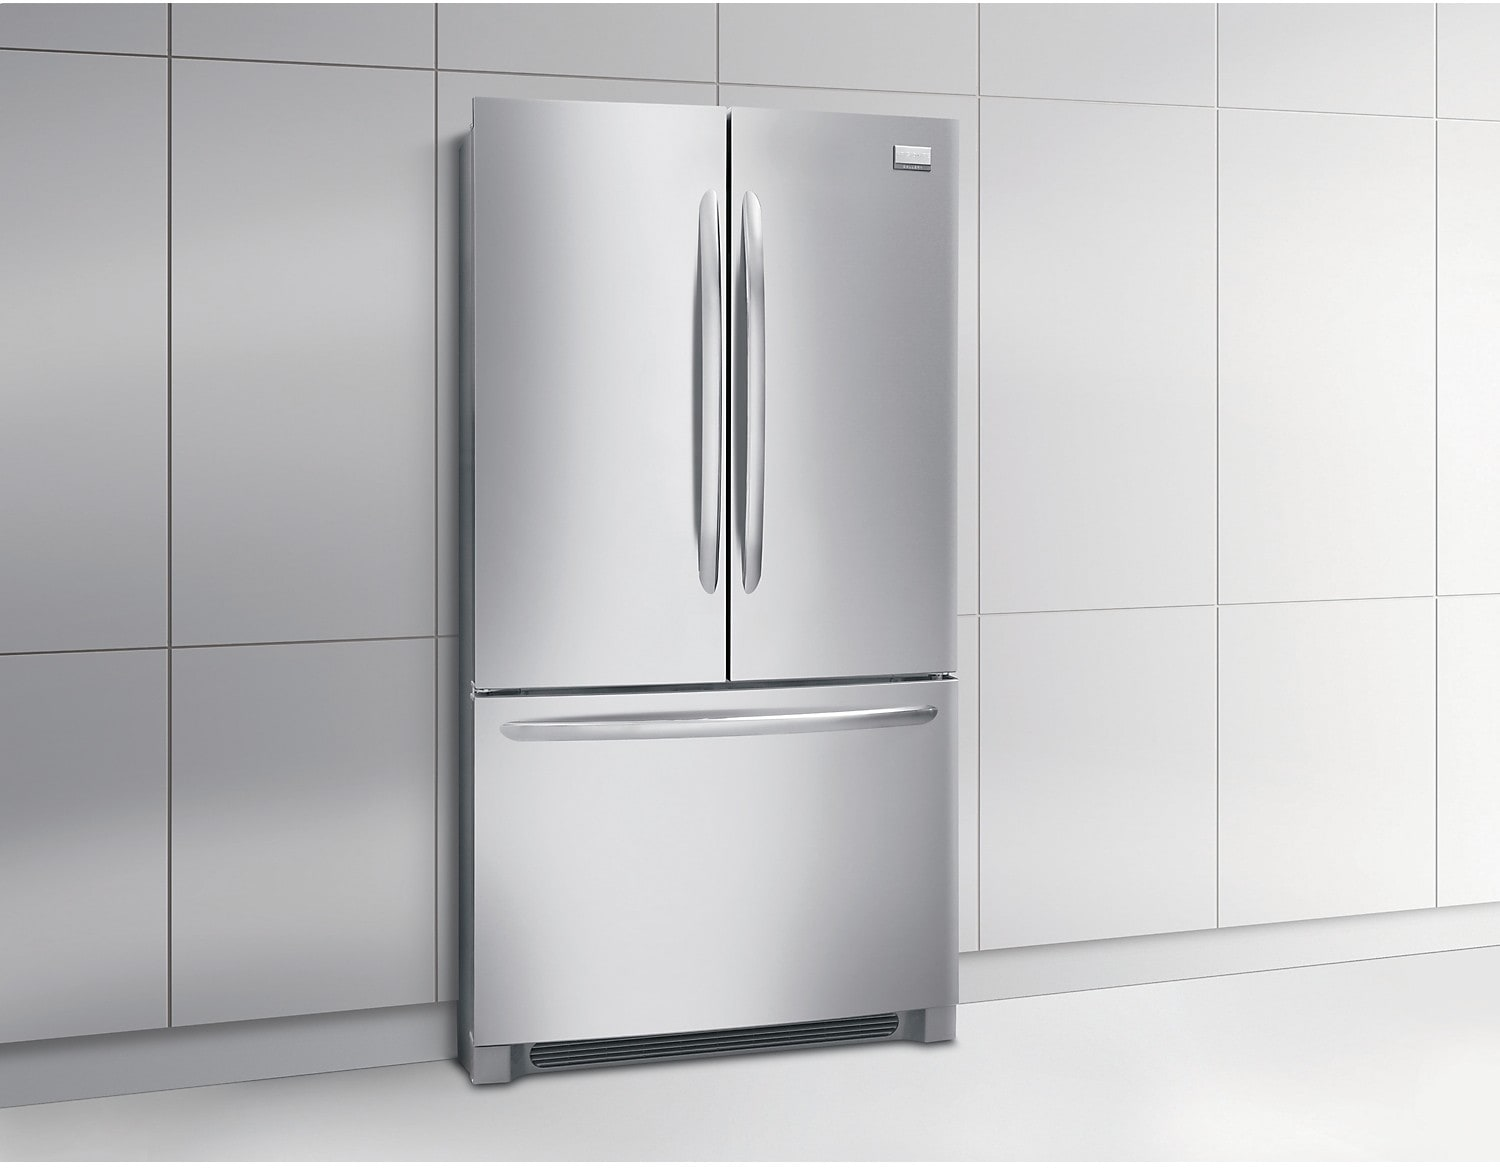 1168 #4F5357  French Door Counter Depth Refrigerator – Stainless Steel The Brick picture/photo Stainless Steel Refrigerator French Doors 33791500